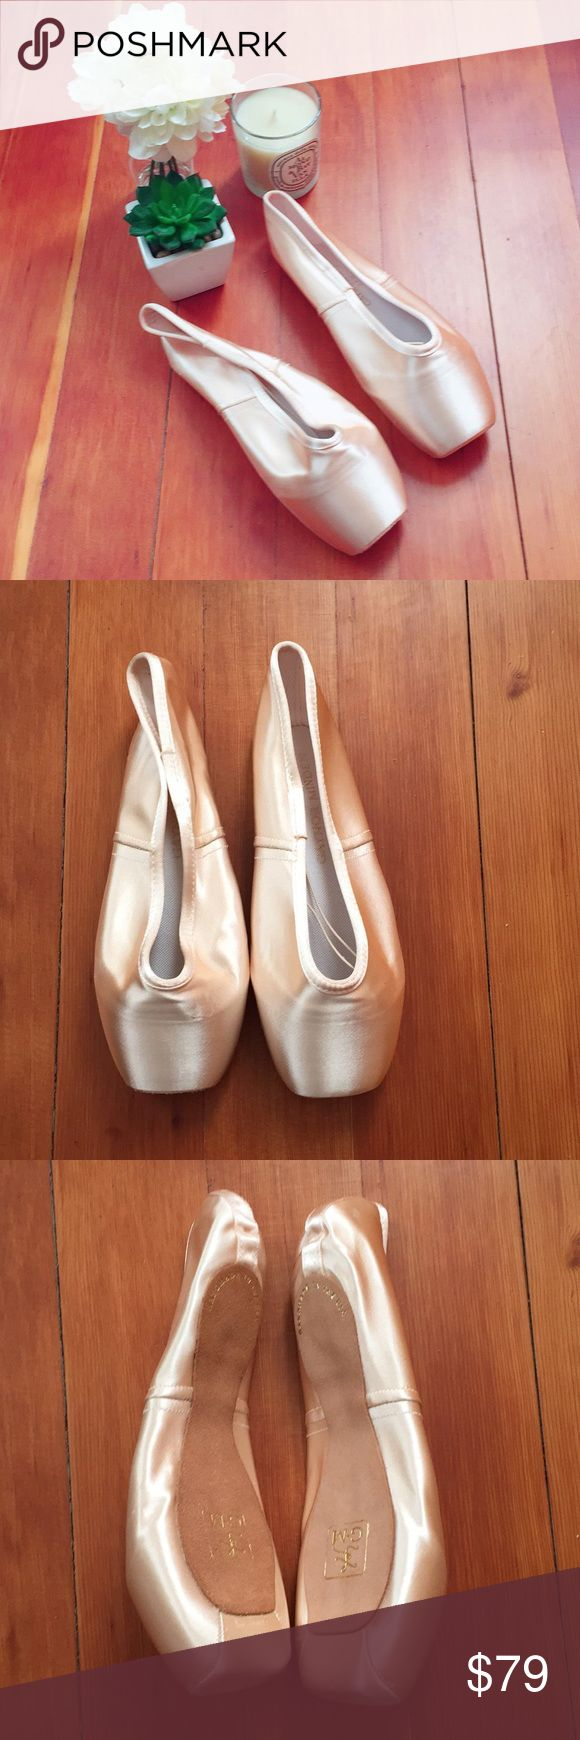 "Gaynor Minden Pointe Shoes NWT Size 9W NWT Never Worn Gaynor Minden Pointe Shoes. I ordered the wrong shank and unfortunately couldn't return. These do not come with elastics or ribbons. No ""Tag"" but new in packaging as pictured. Size 9W (Fits US Street Shoe 7.5-8 approximately. Code: 4-521-22. Box Square & Wide. Shank - 5, Hard. Vamp- 2, Deep. Heel - 2, High Heel. Top Rated Seller & Posh Ambassador. Bundle & Save 10%! Gaynor Minden Shoes"